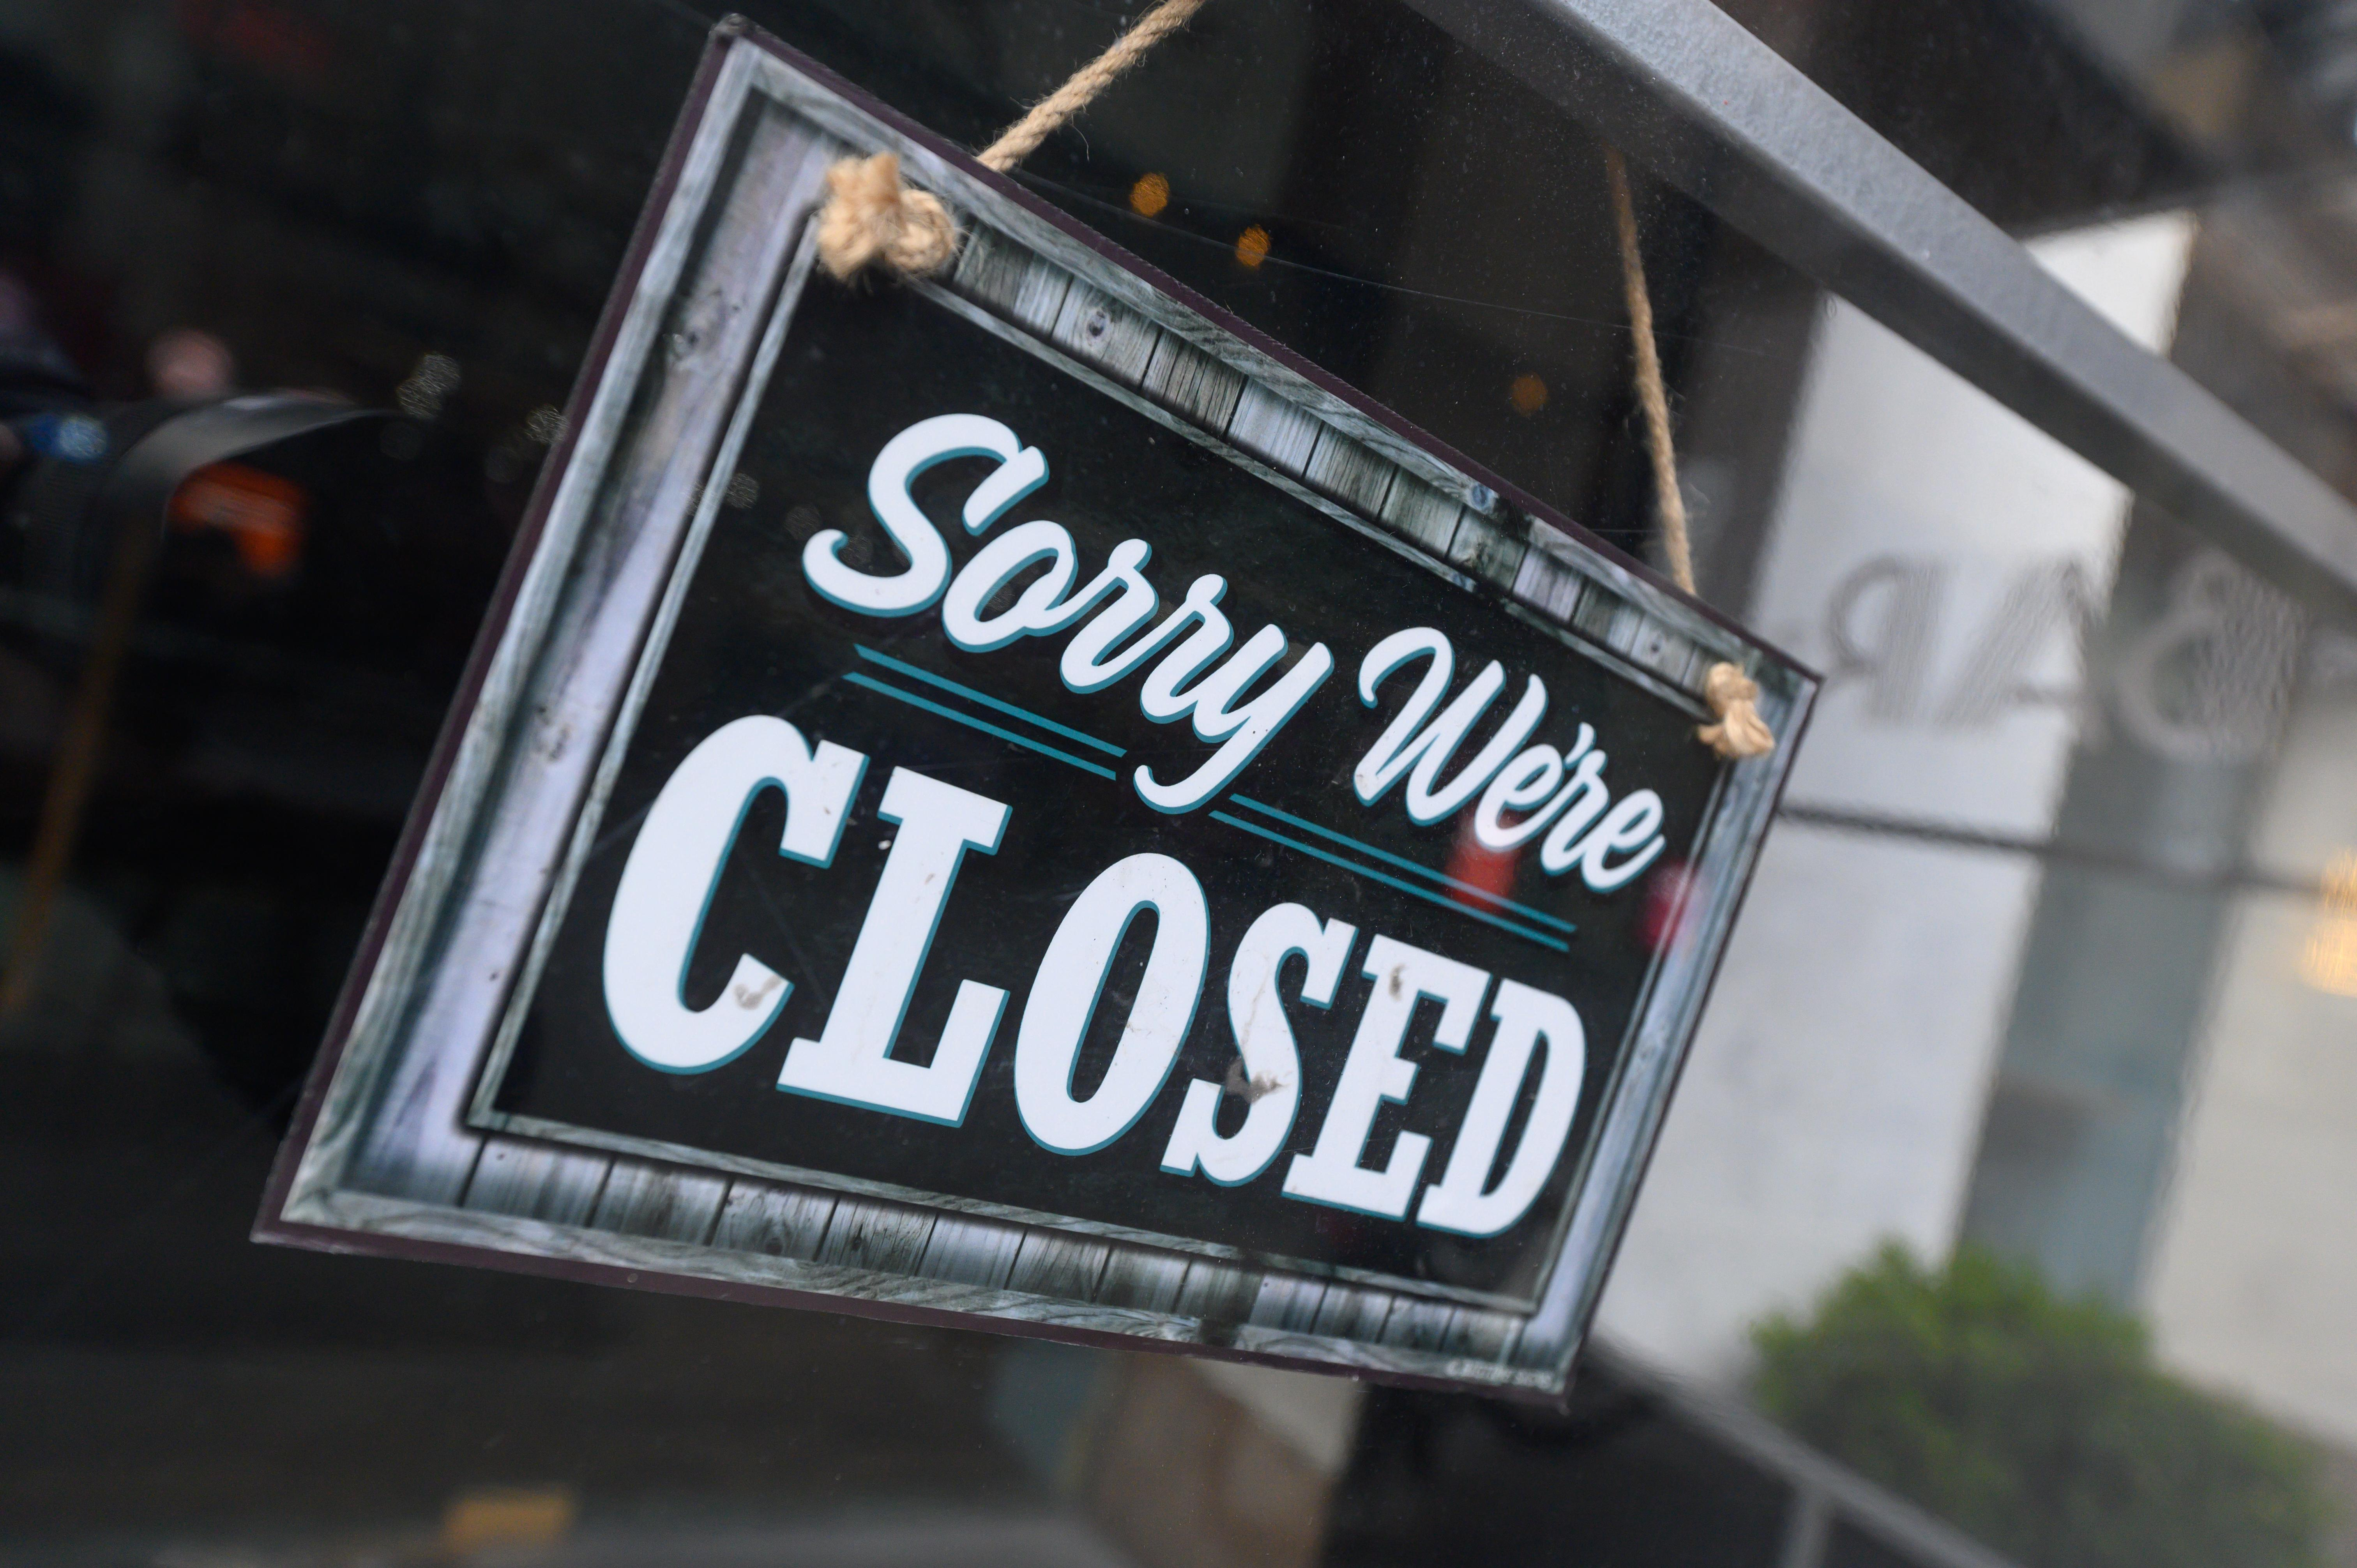 Many small businesses don't expect to survive long as coronavirus wallops economy